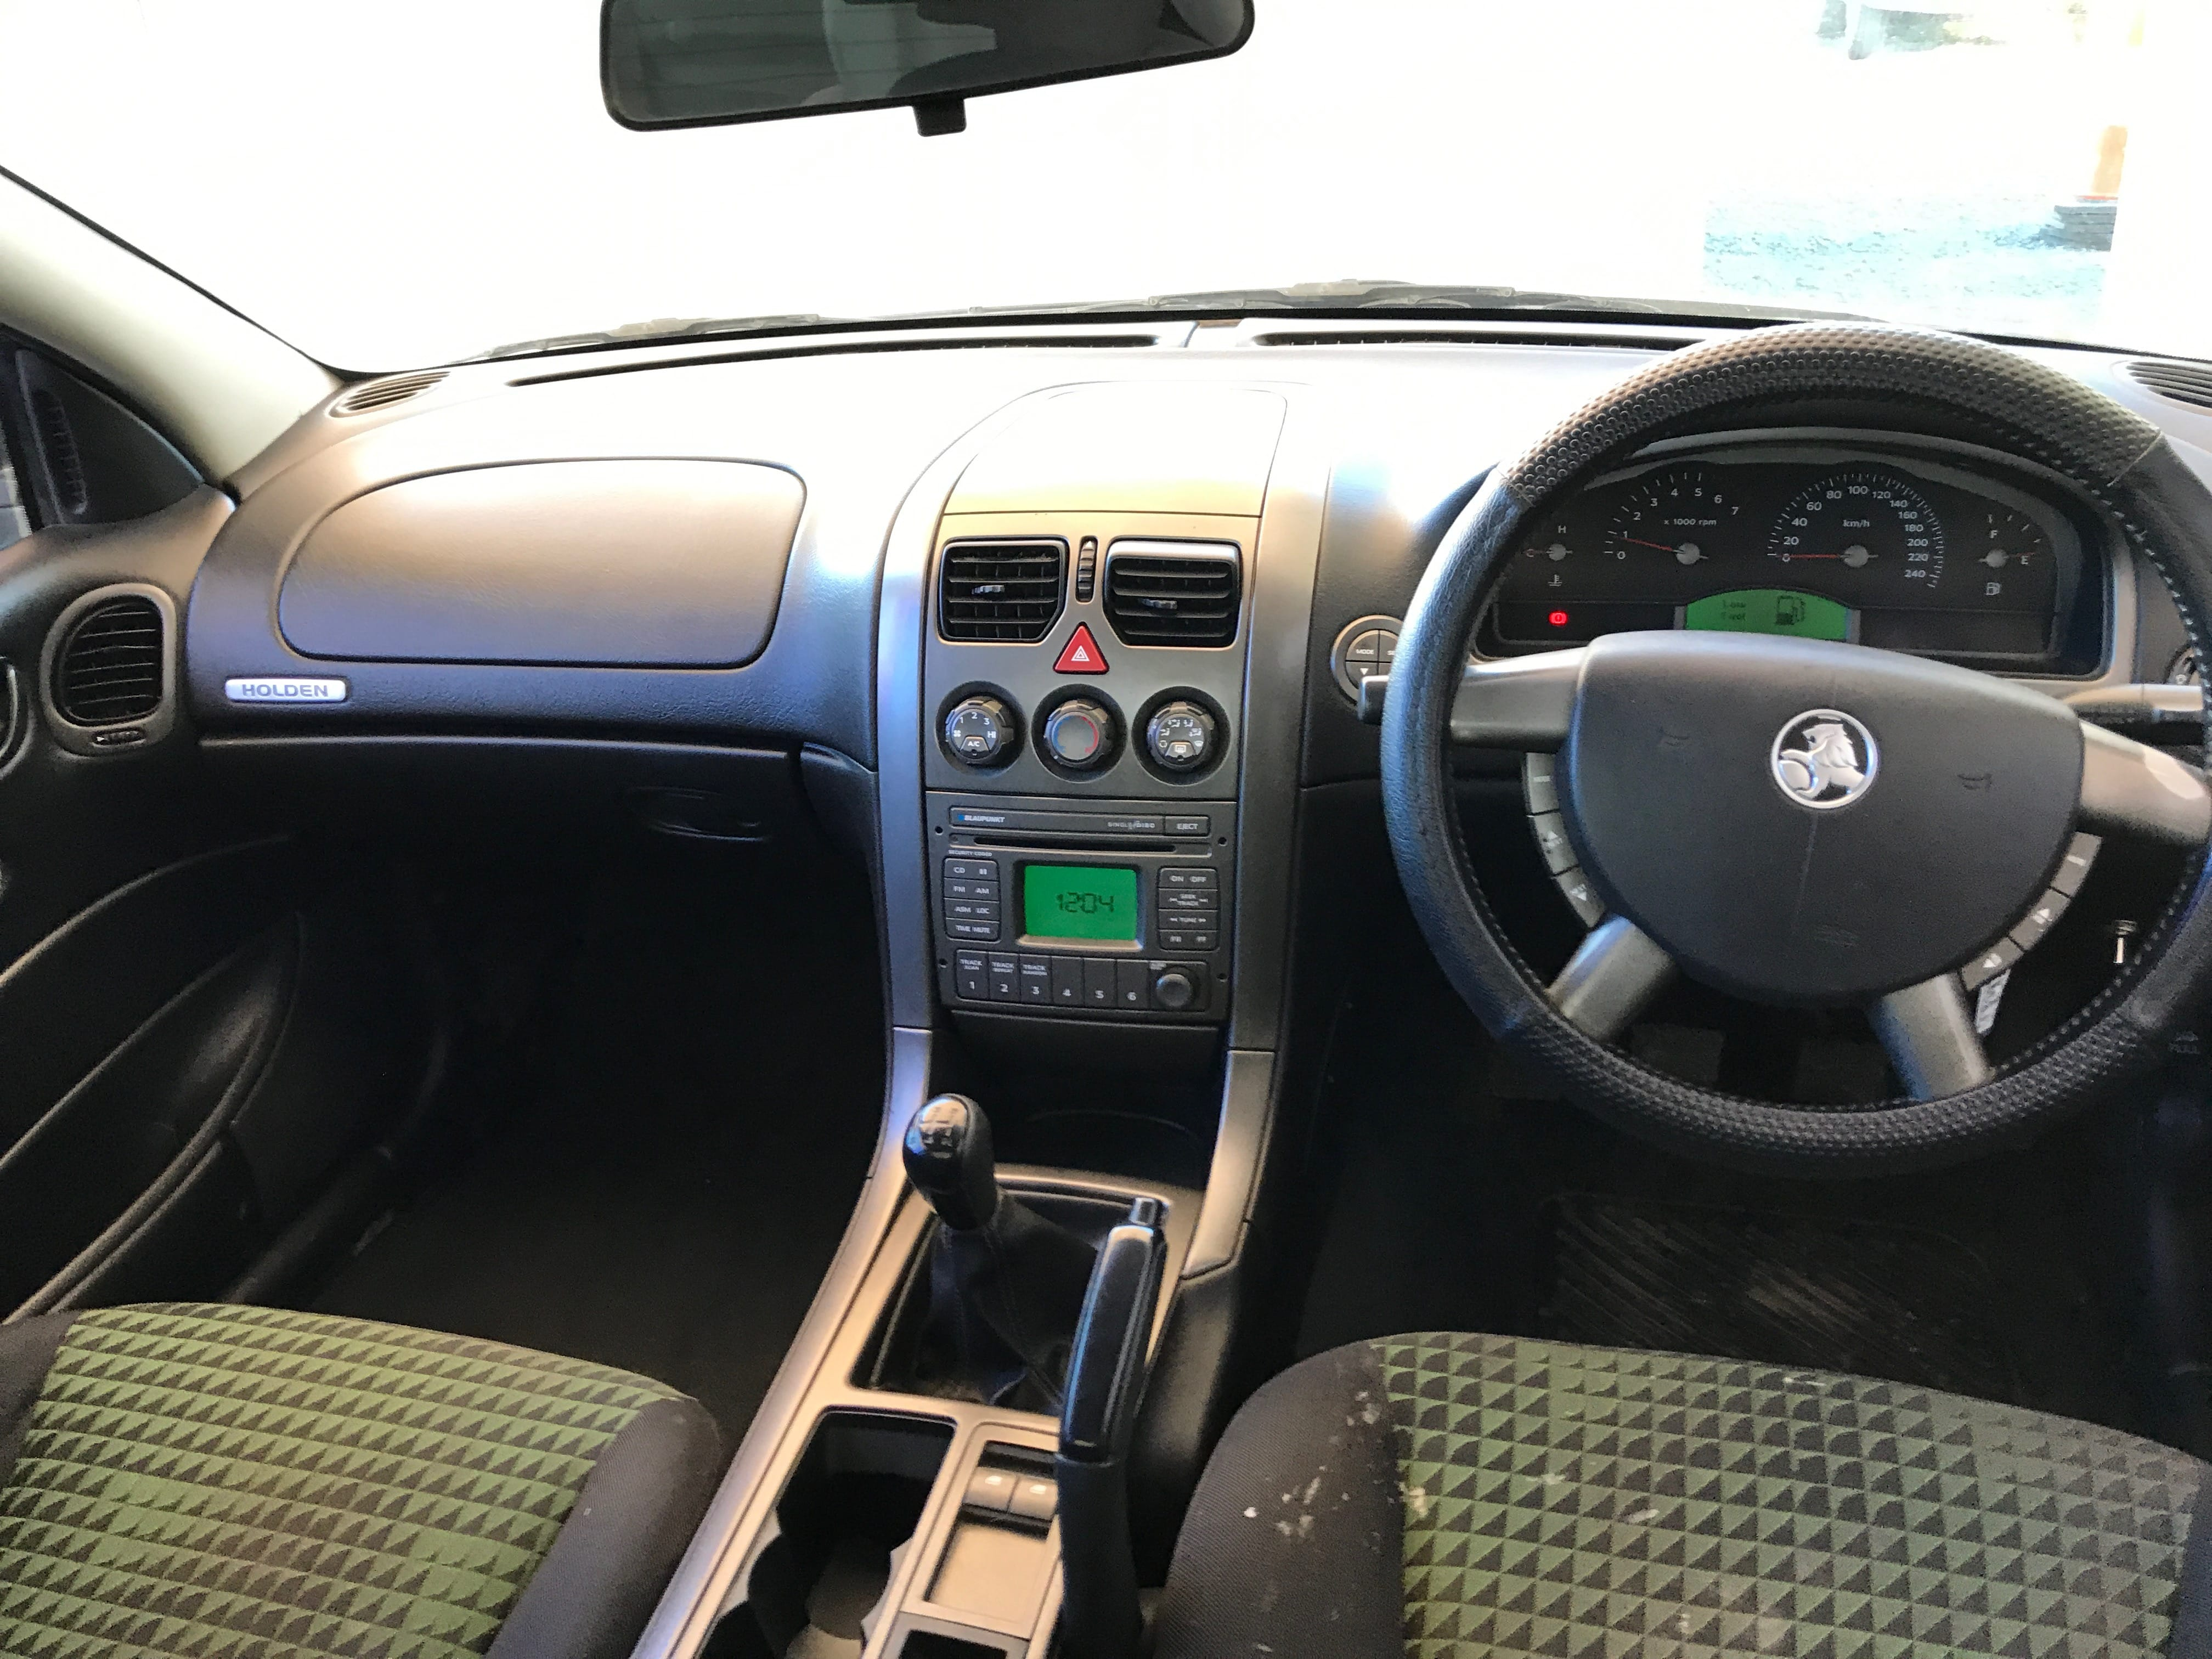 Manual Commodore Ute VY 6 cylinder with hardlid 2003 for sale 12-min